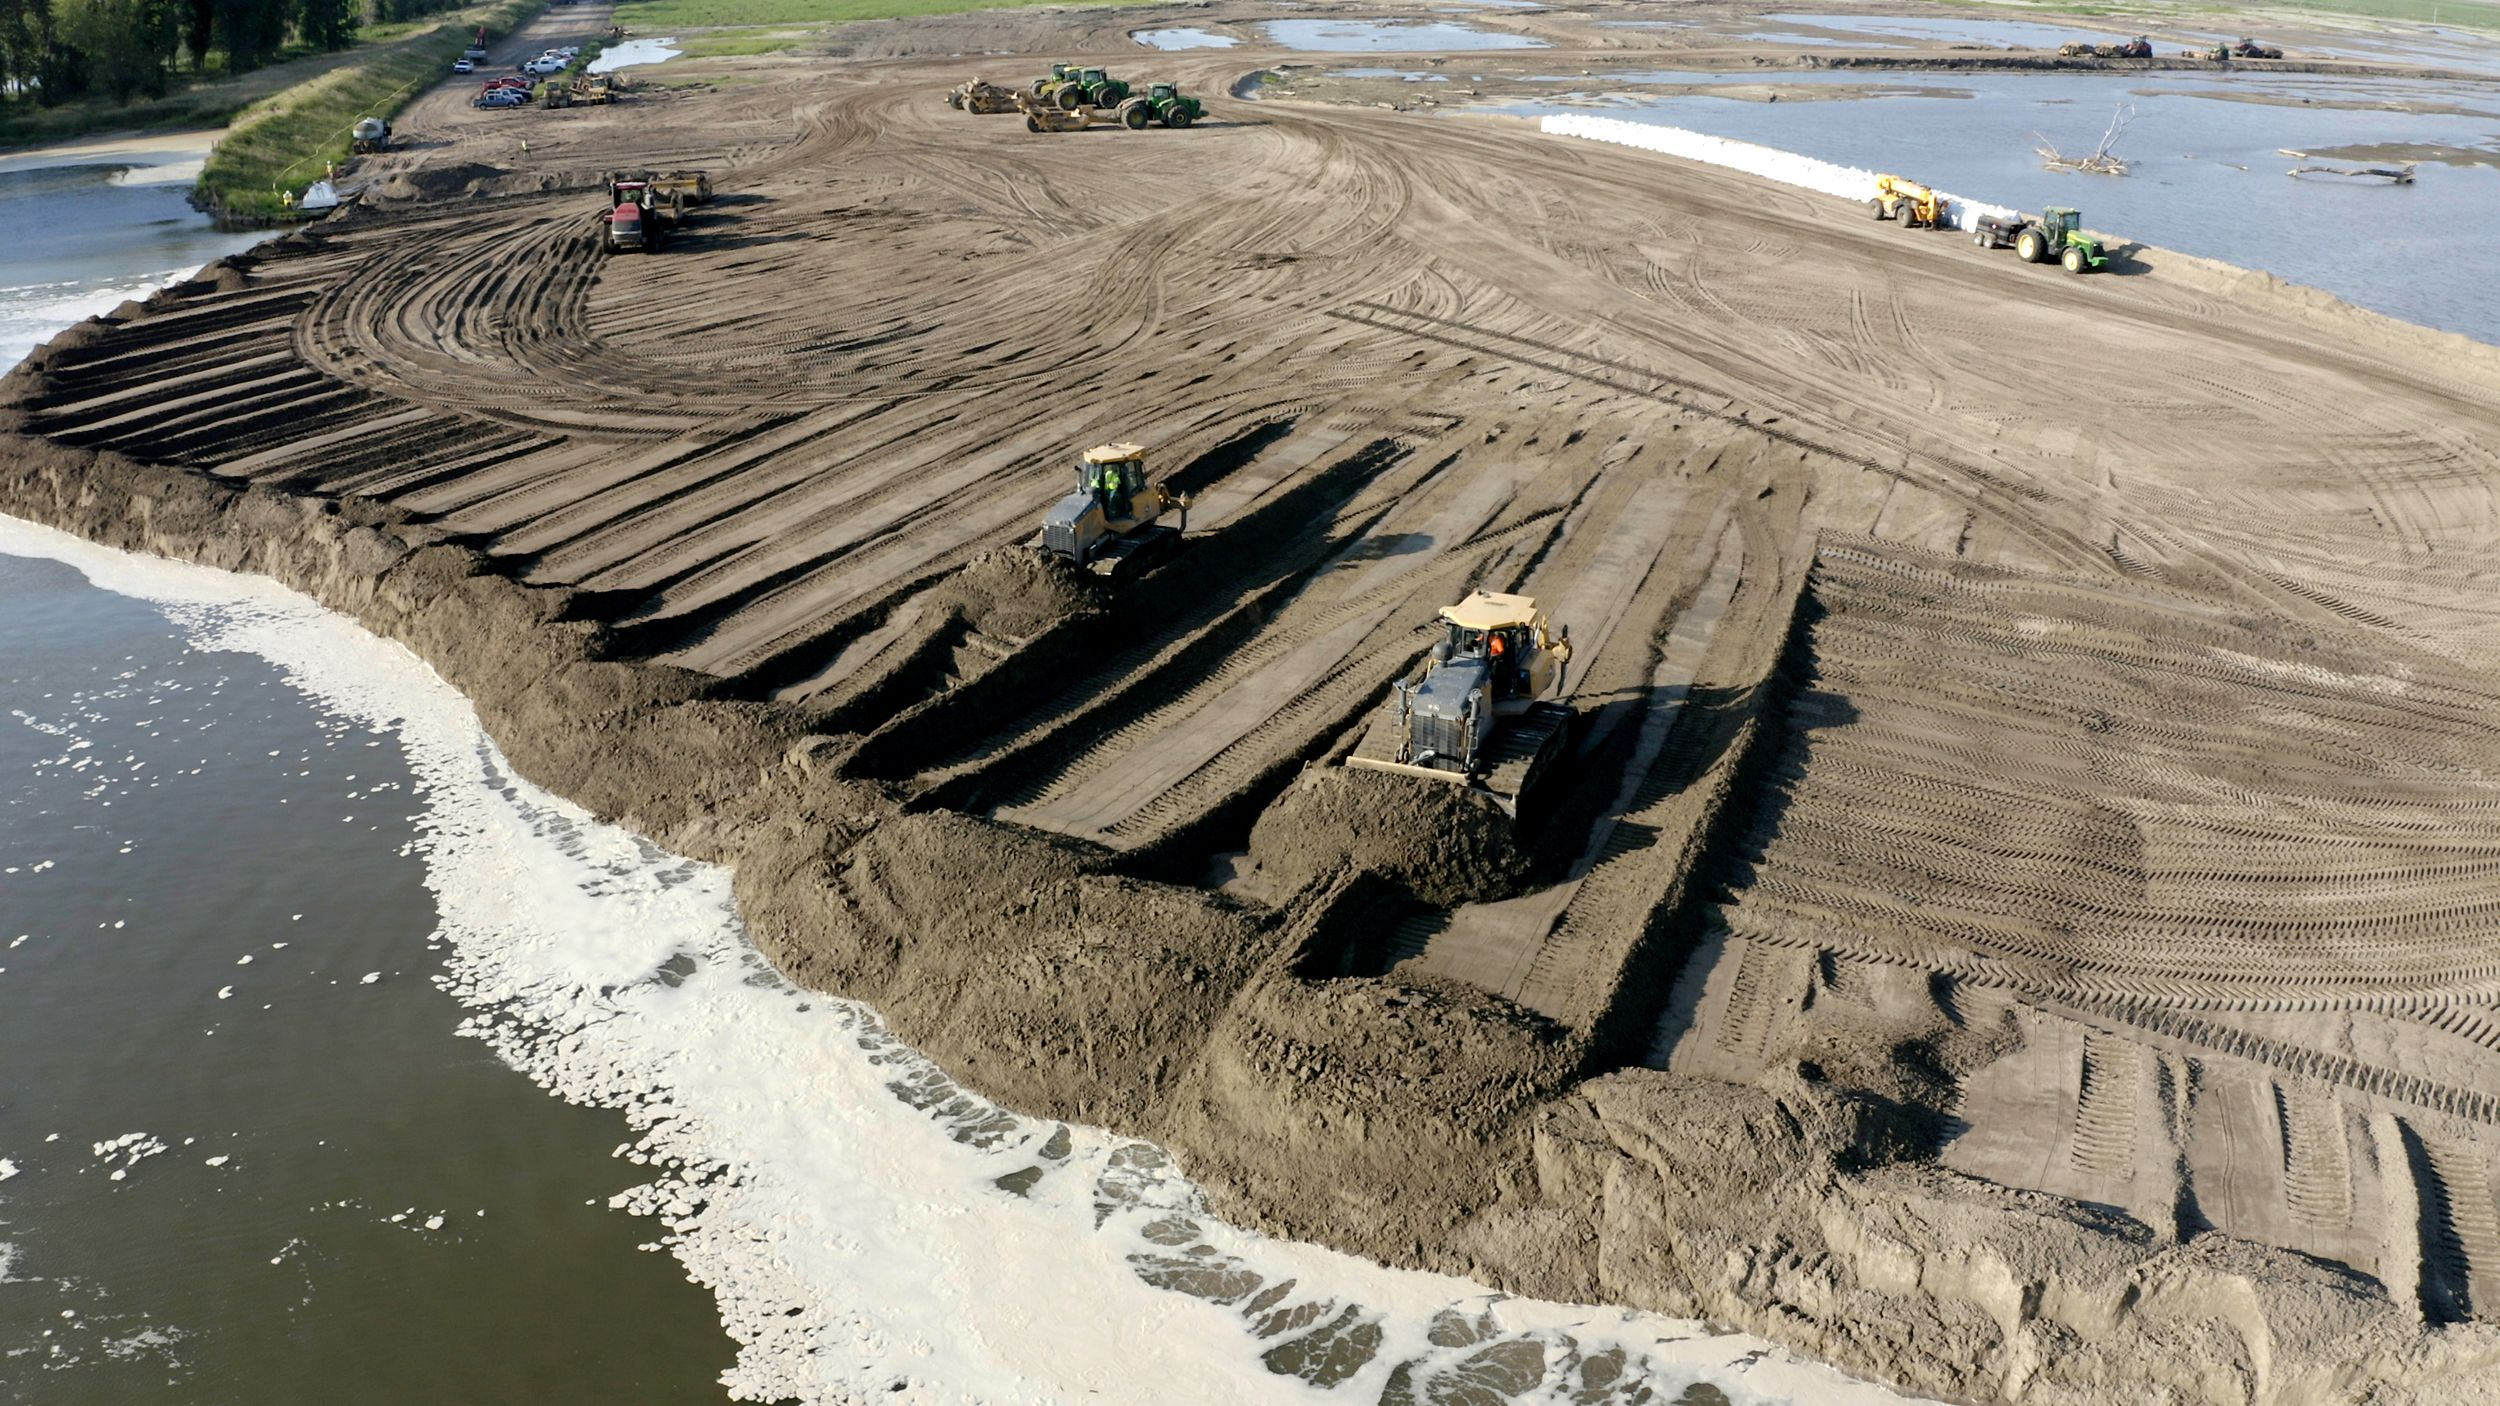 Flooded out, farmers find work rebuilding the levees that